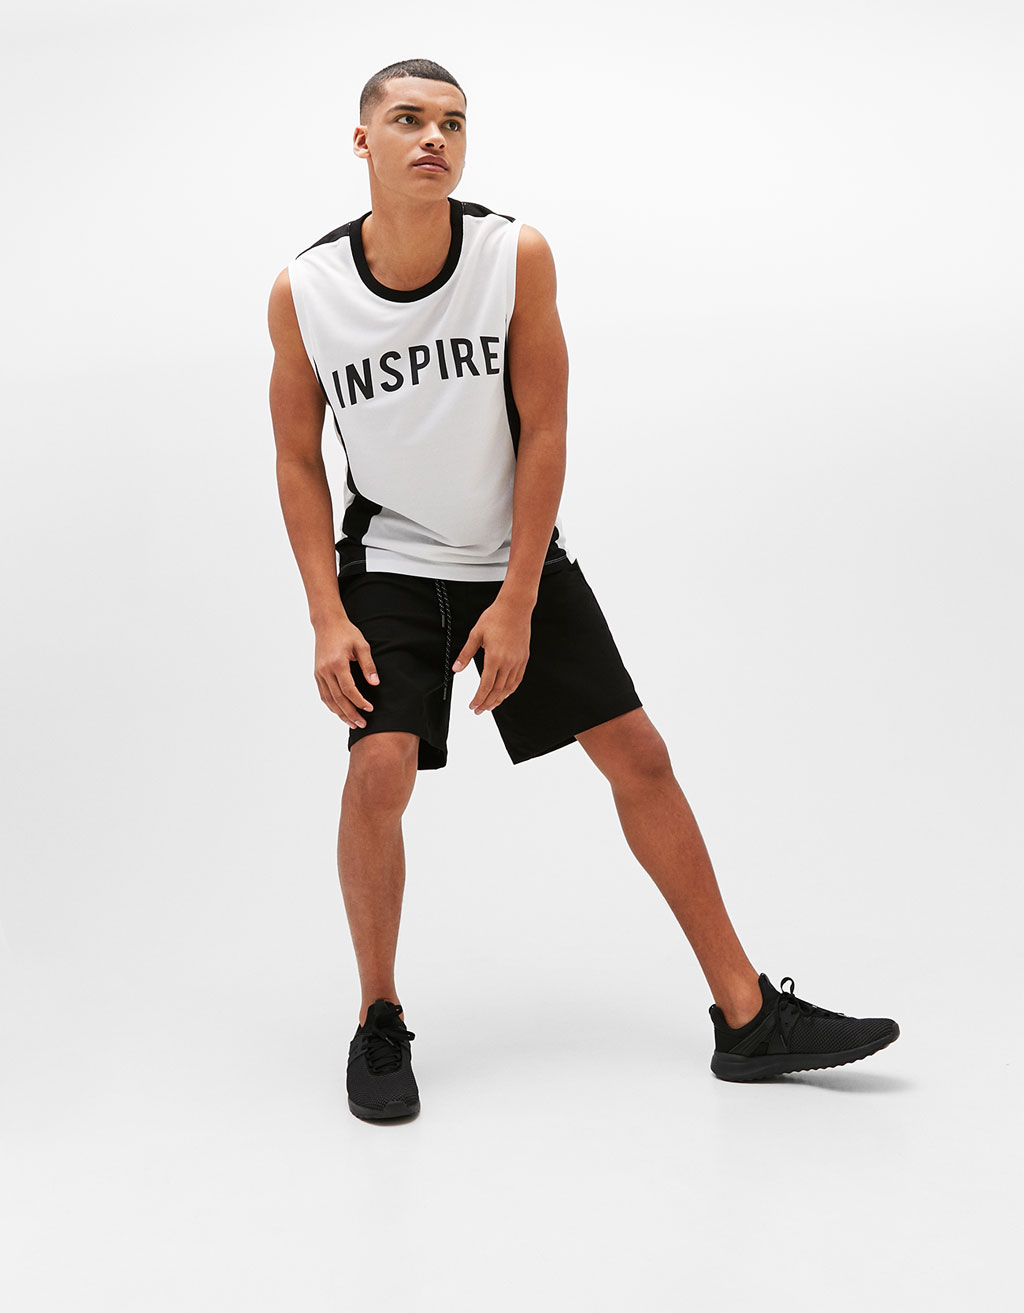 'Inspire' strappy sports T-shirt